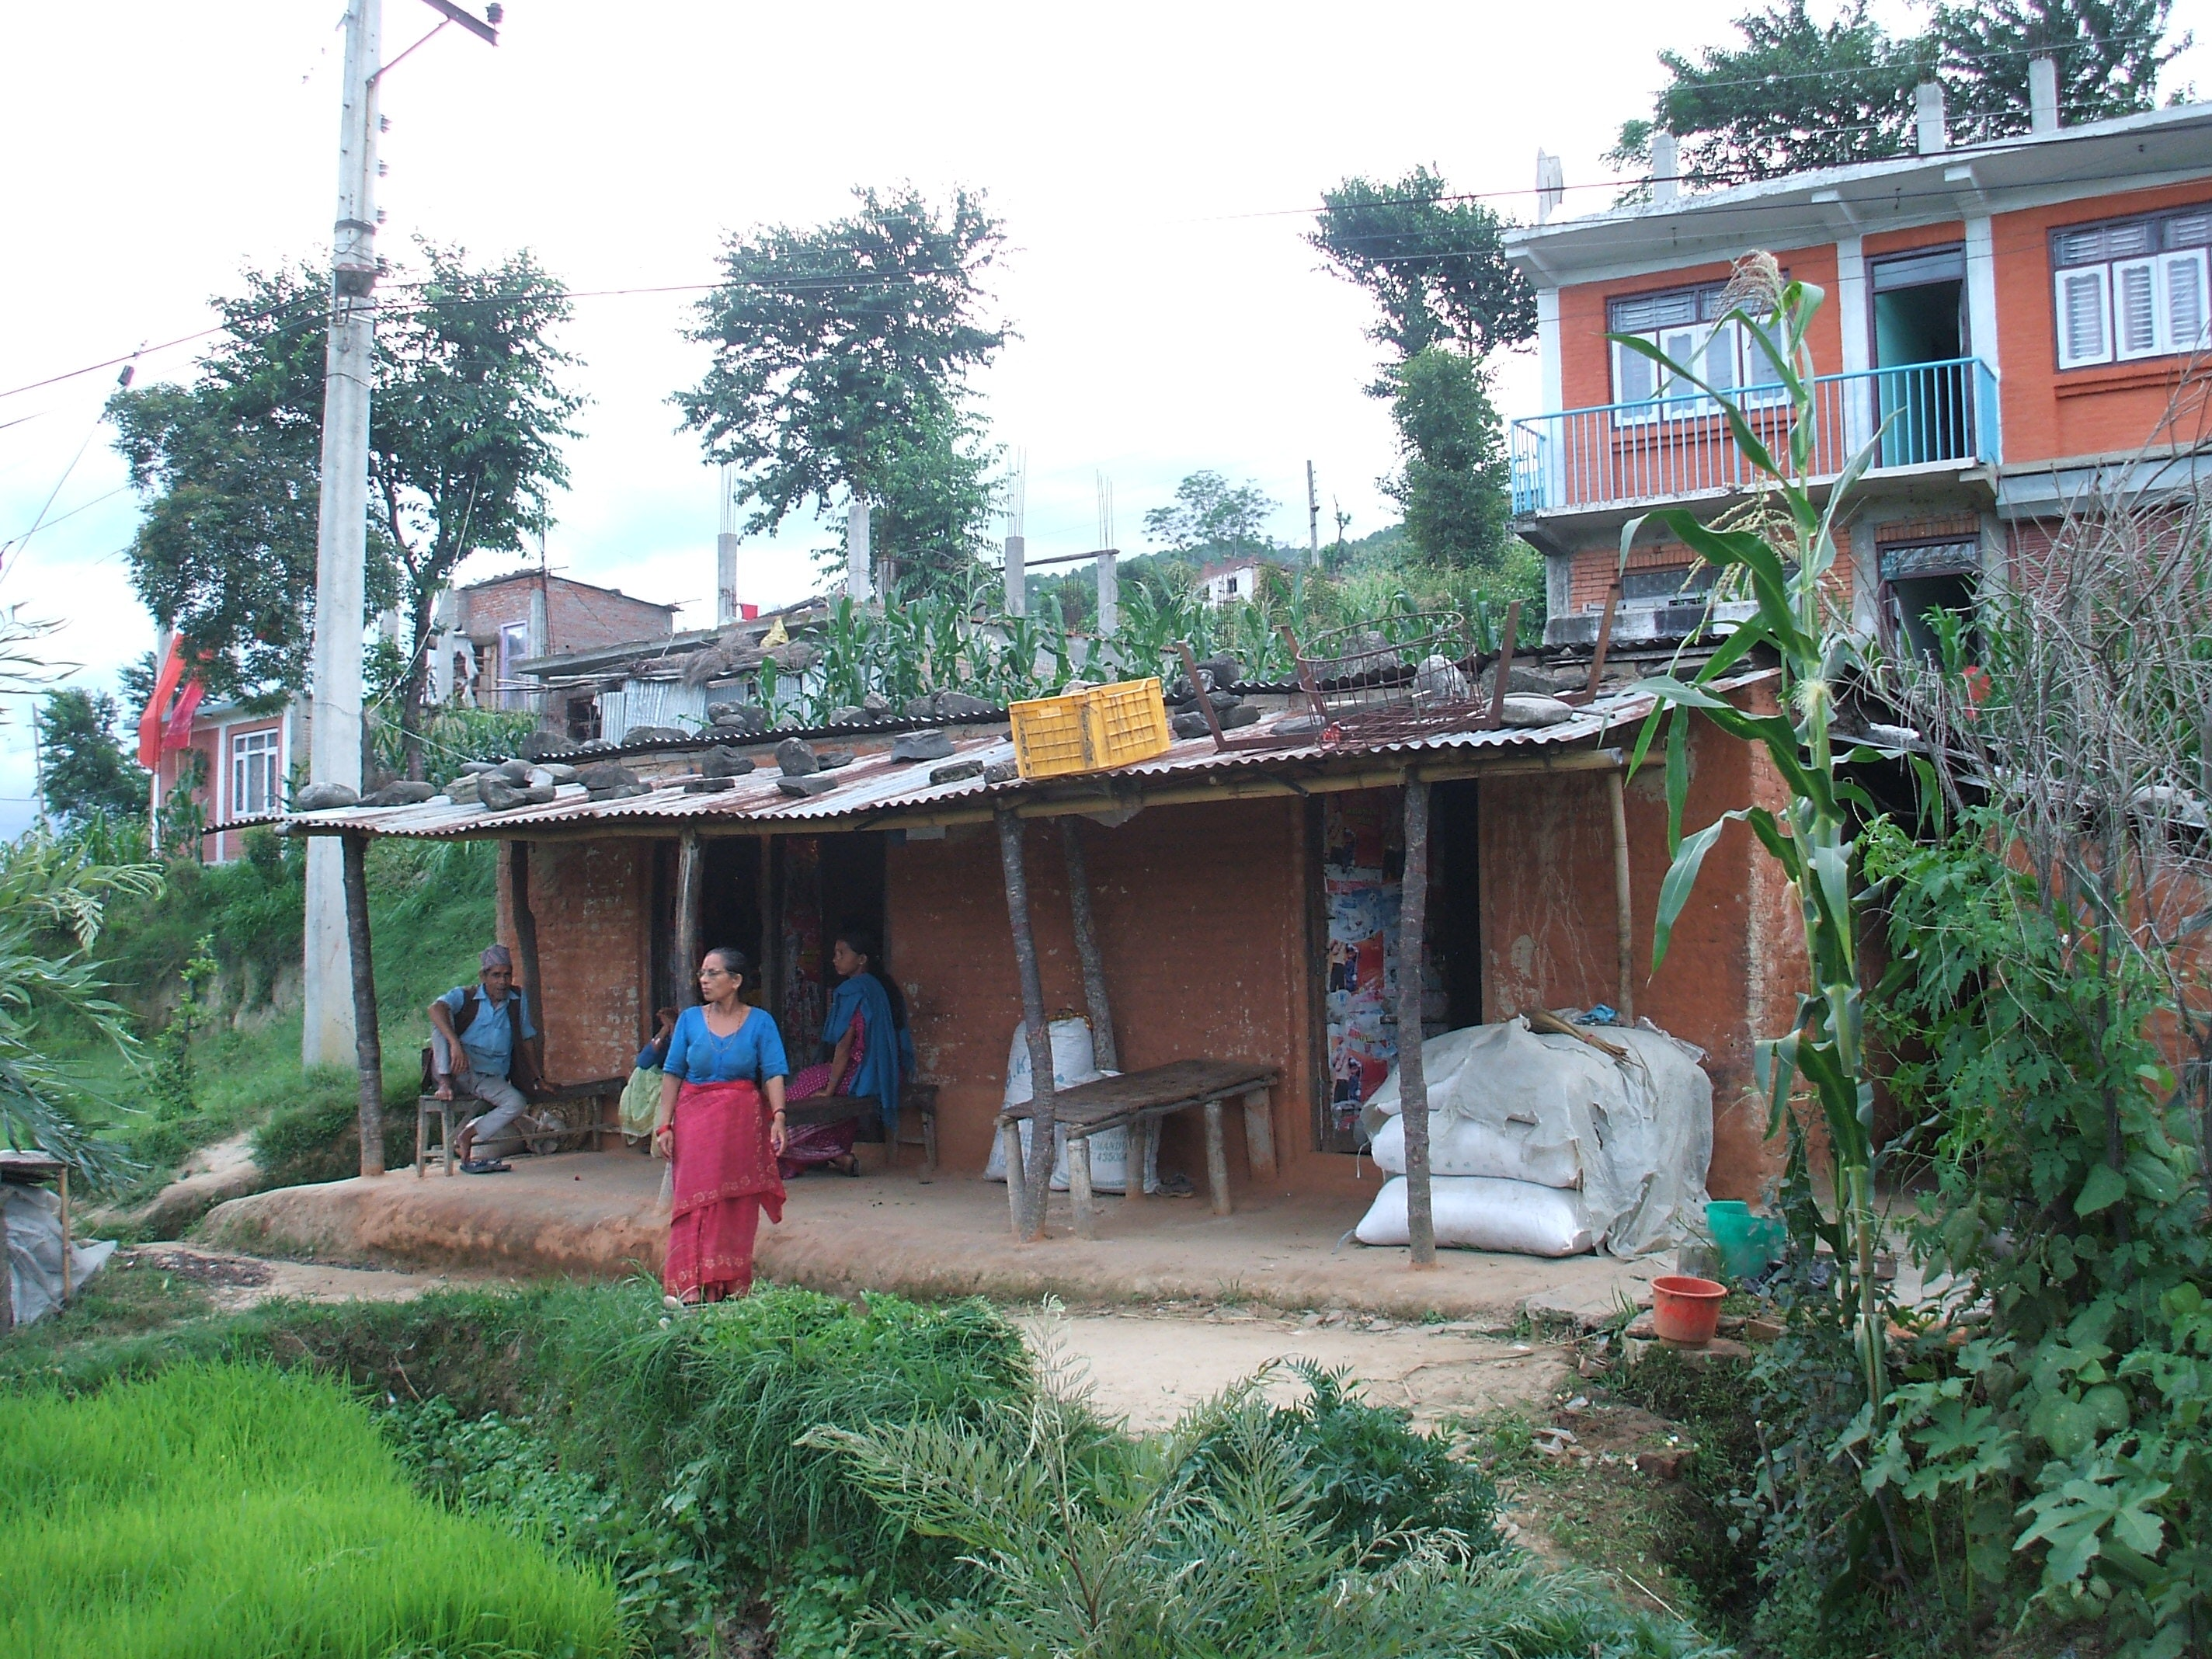 Many people live in informal homes in Nepal. Ifte Ahmed